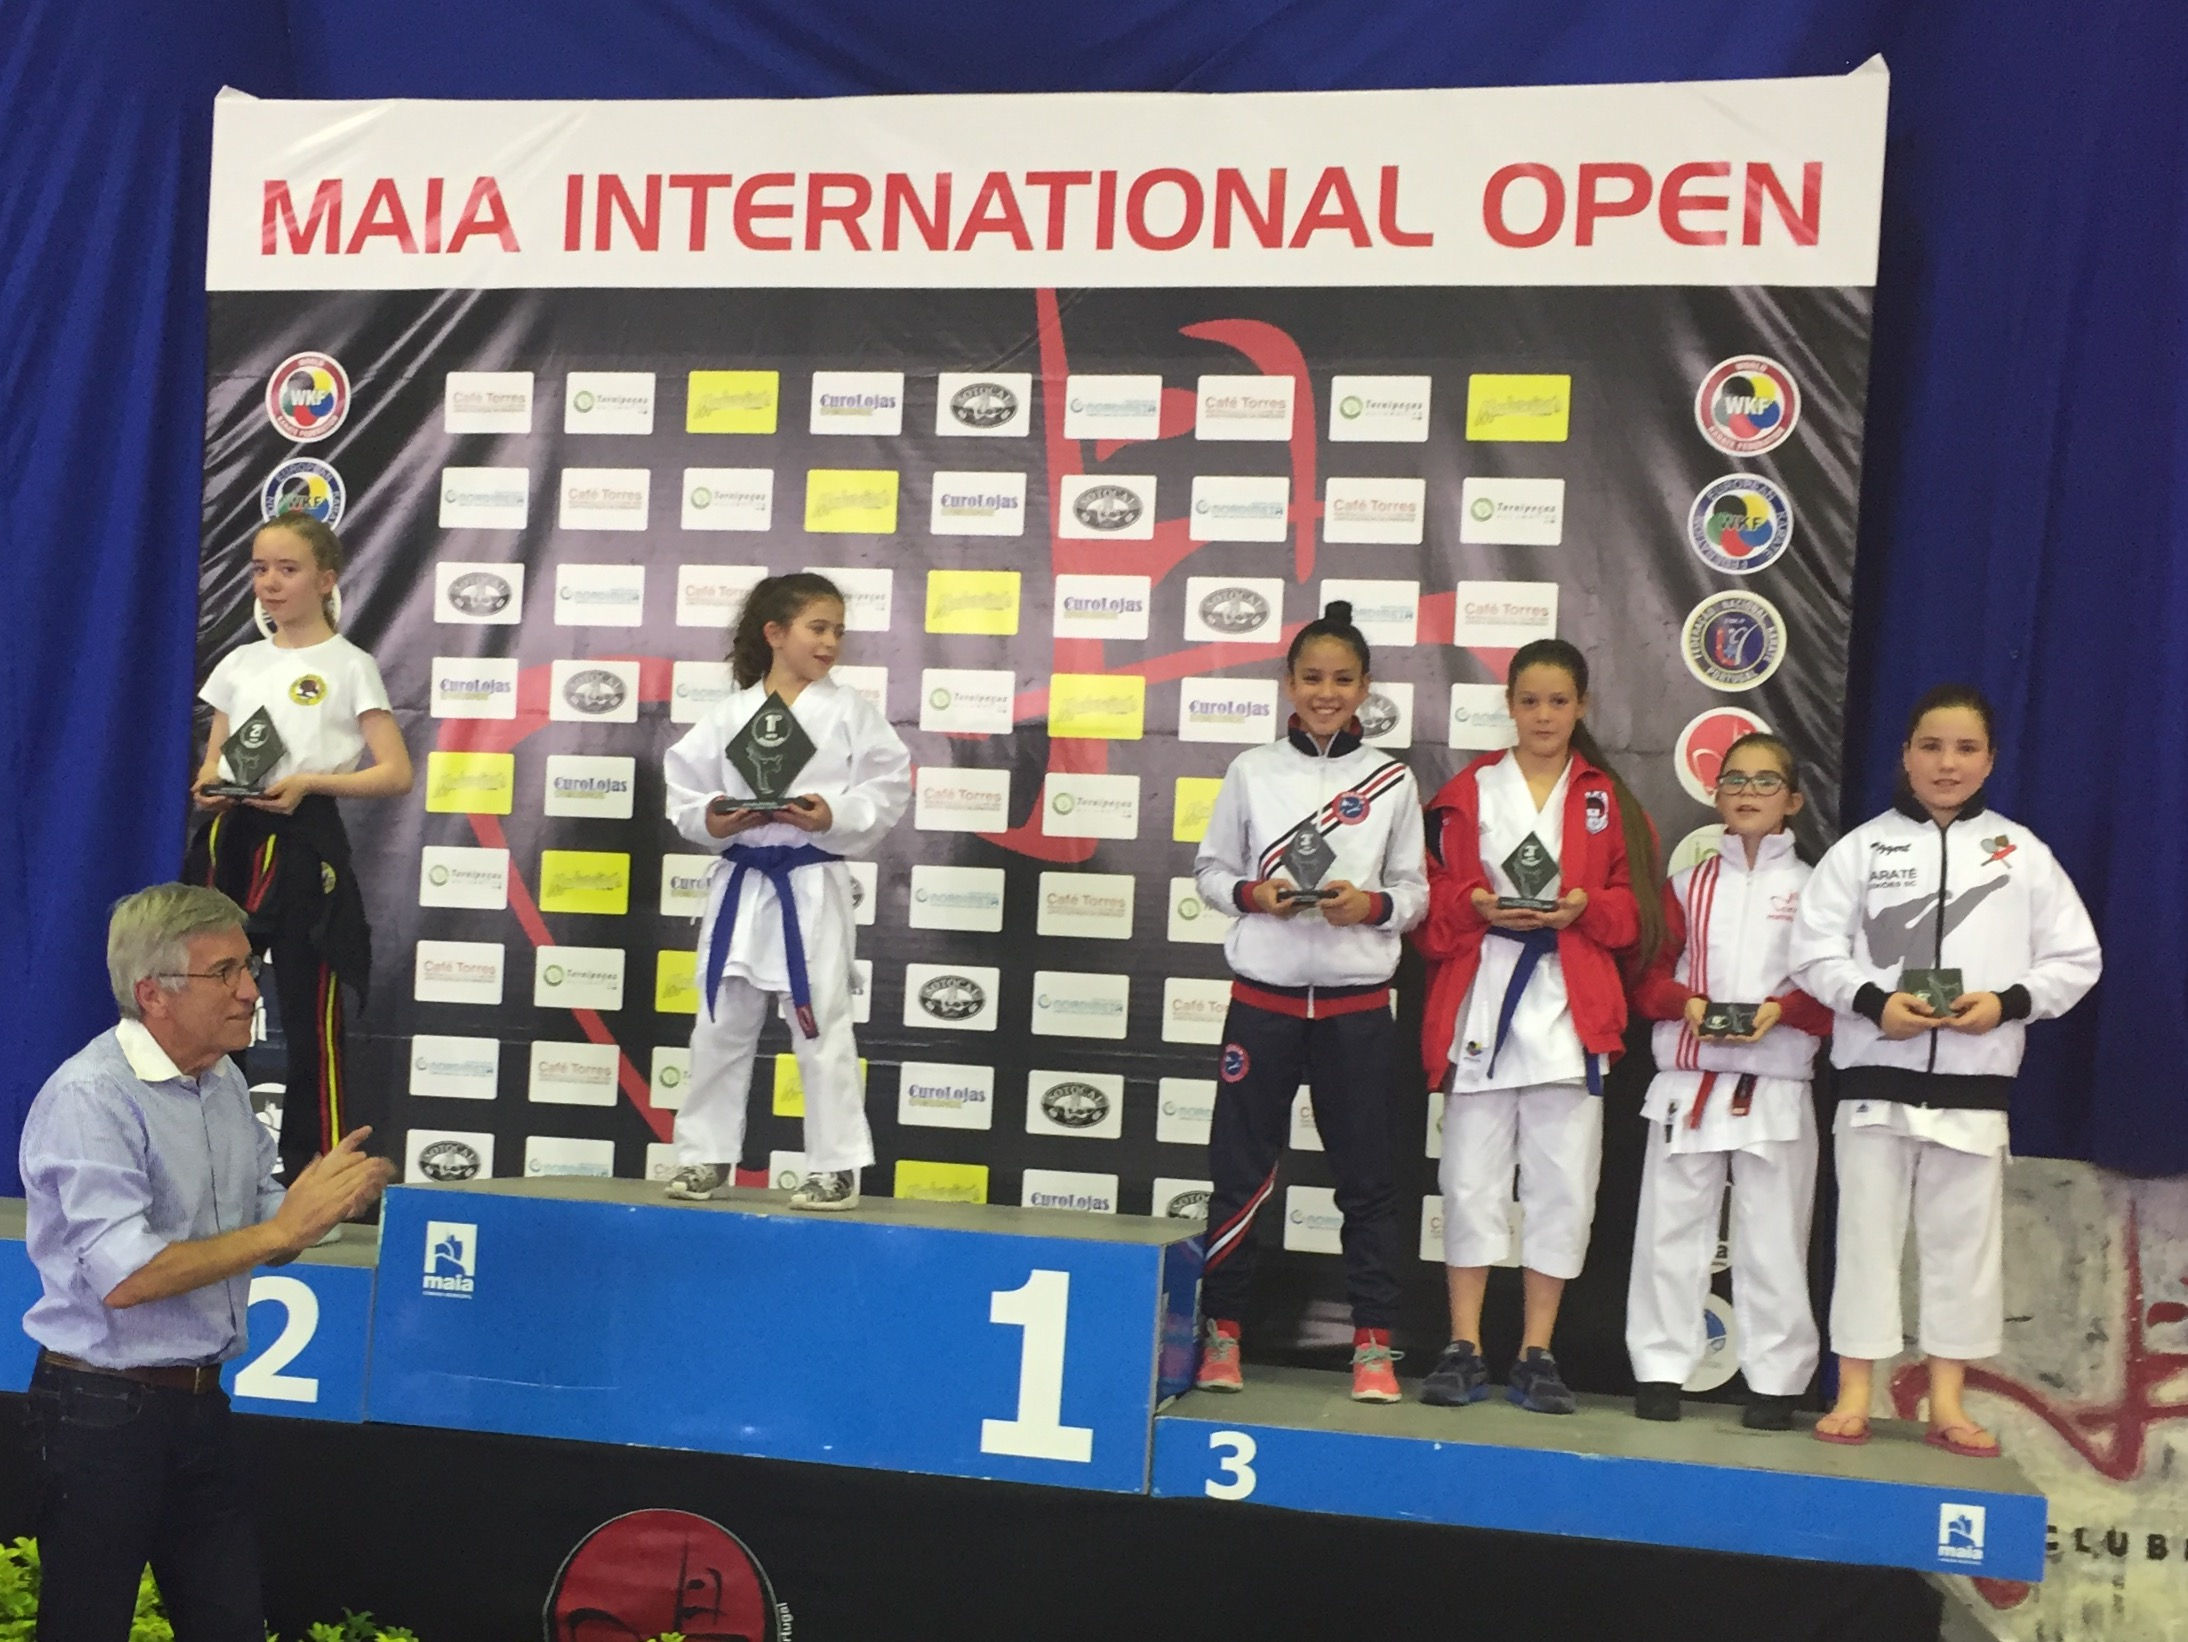 17º Internacional Portugal Maia Open - Karate 2017